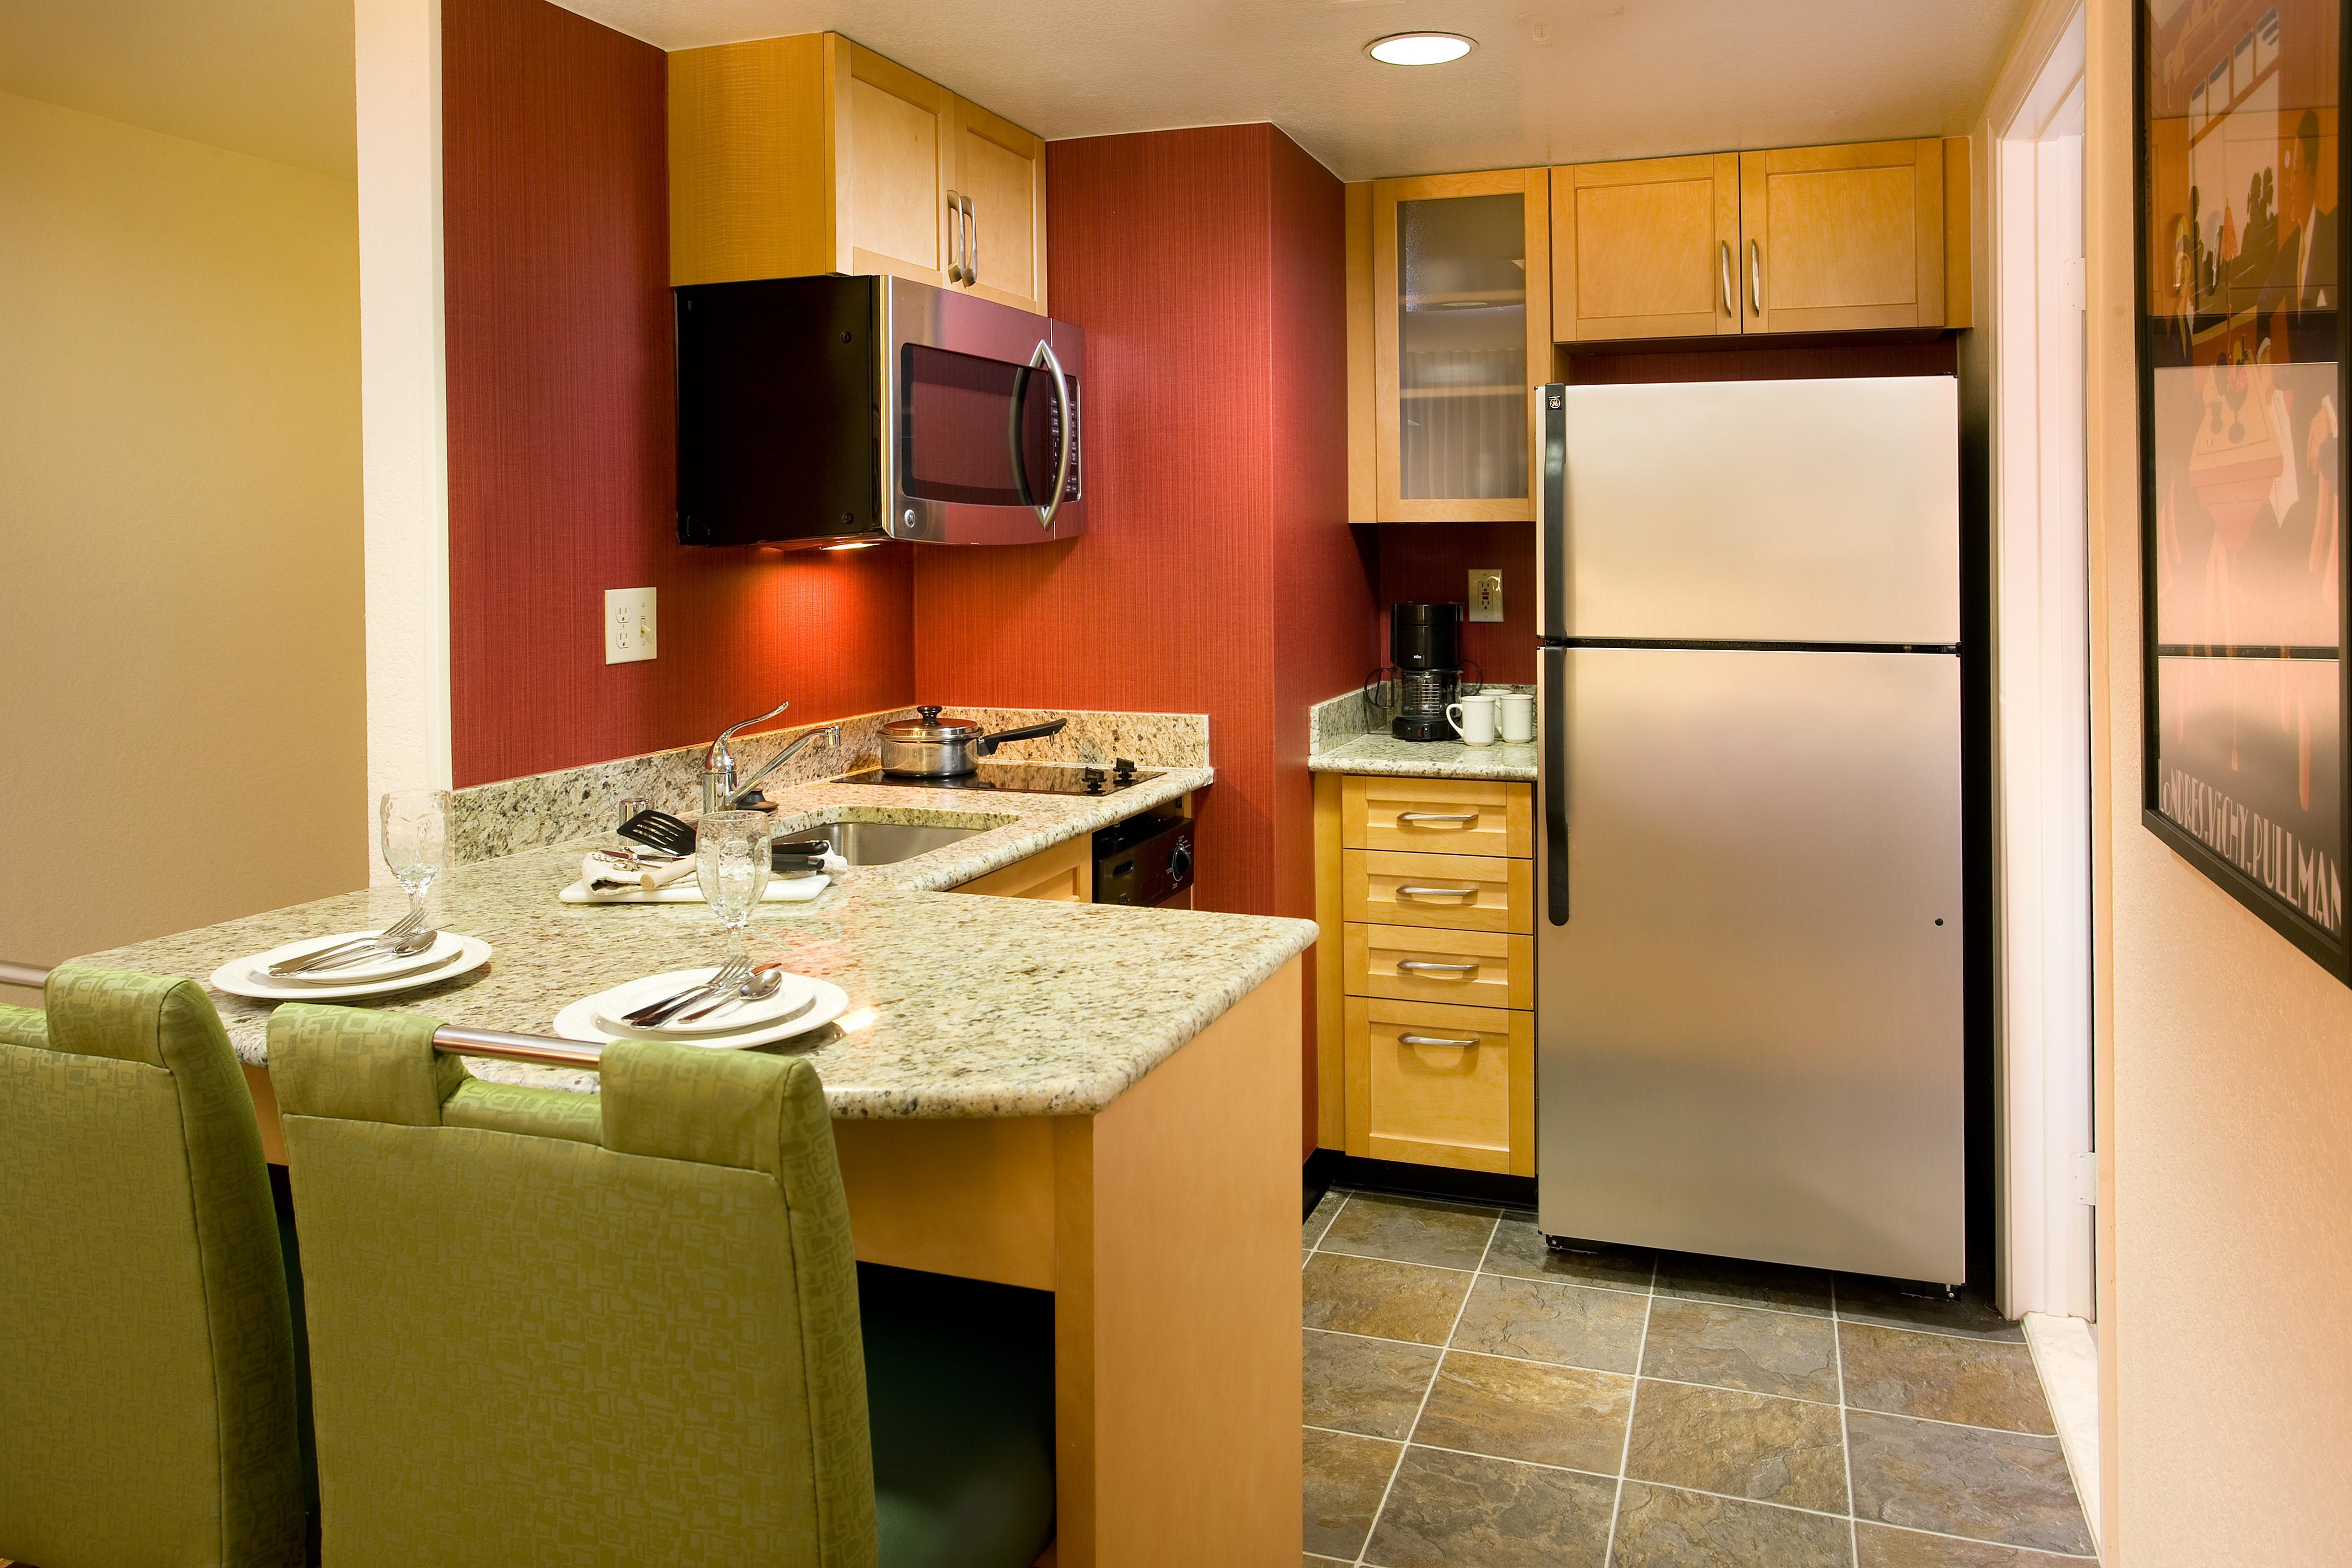 One-Bedroom Suite Kitchen - Kitchens in our one-bedroom suites feature a refrigerator, stove, microwave, toaster, pots, pans, dishes, silverware, glassware and dishwasher so you feel right at home.